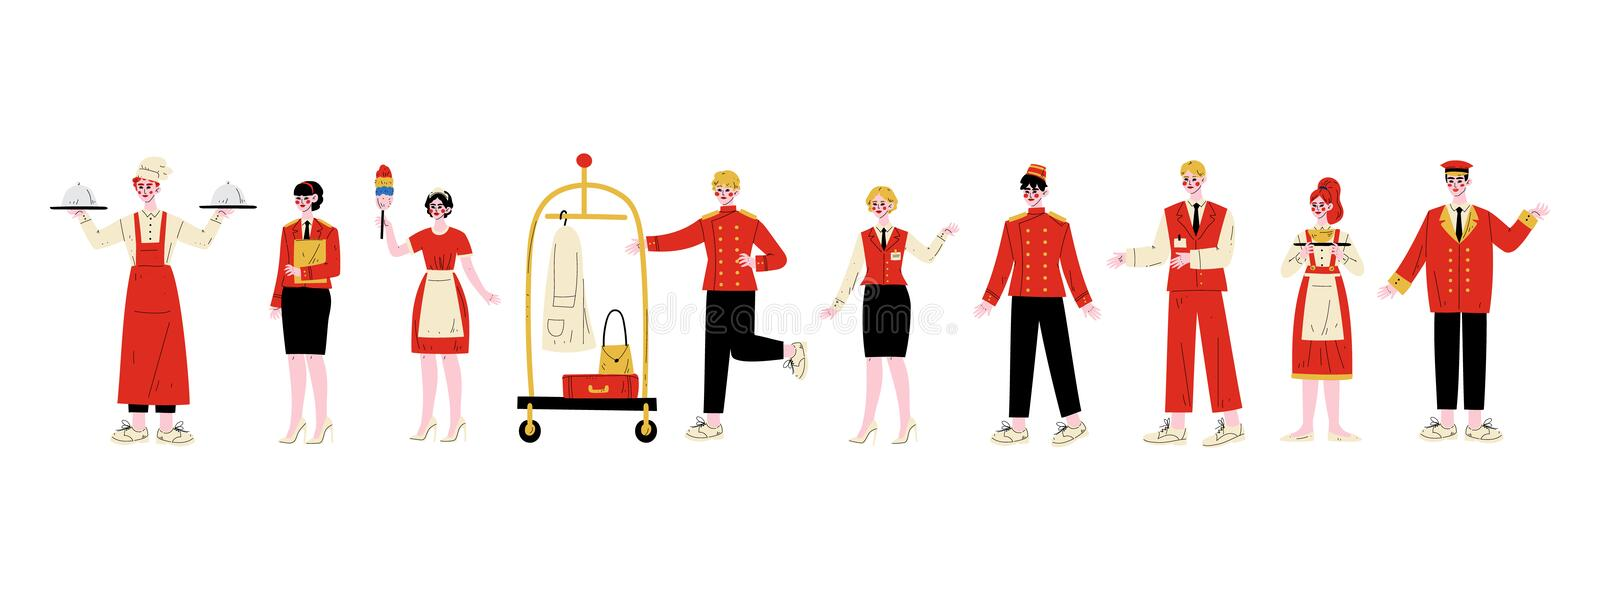 Hotel Staff Characters Set, Chef, Manager, Maid, Bellhop, Receptionist, Concierge, Waitress, Doorman in Red Uniform. Vector Illustration on White Background royalty free illustration